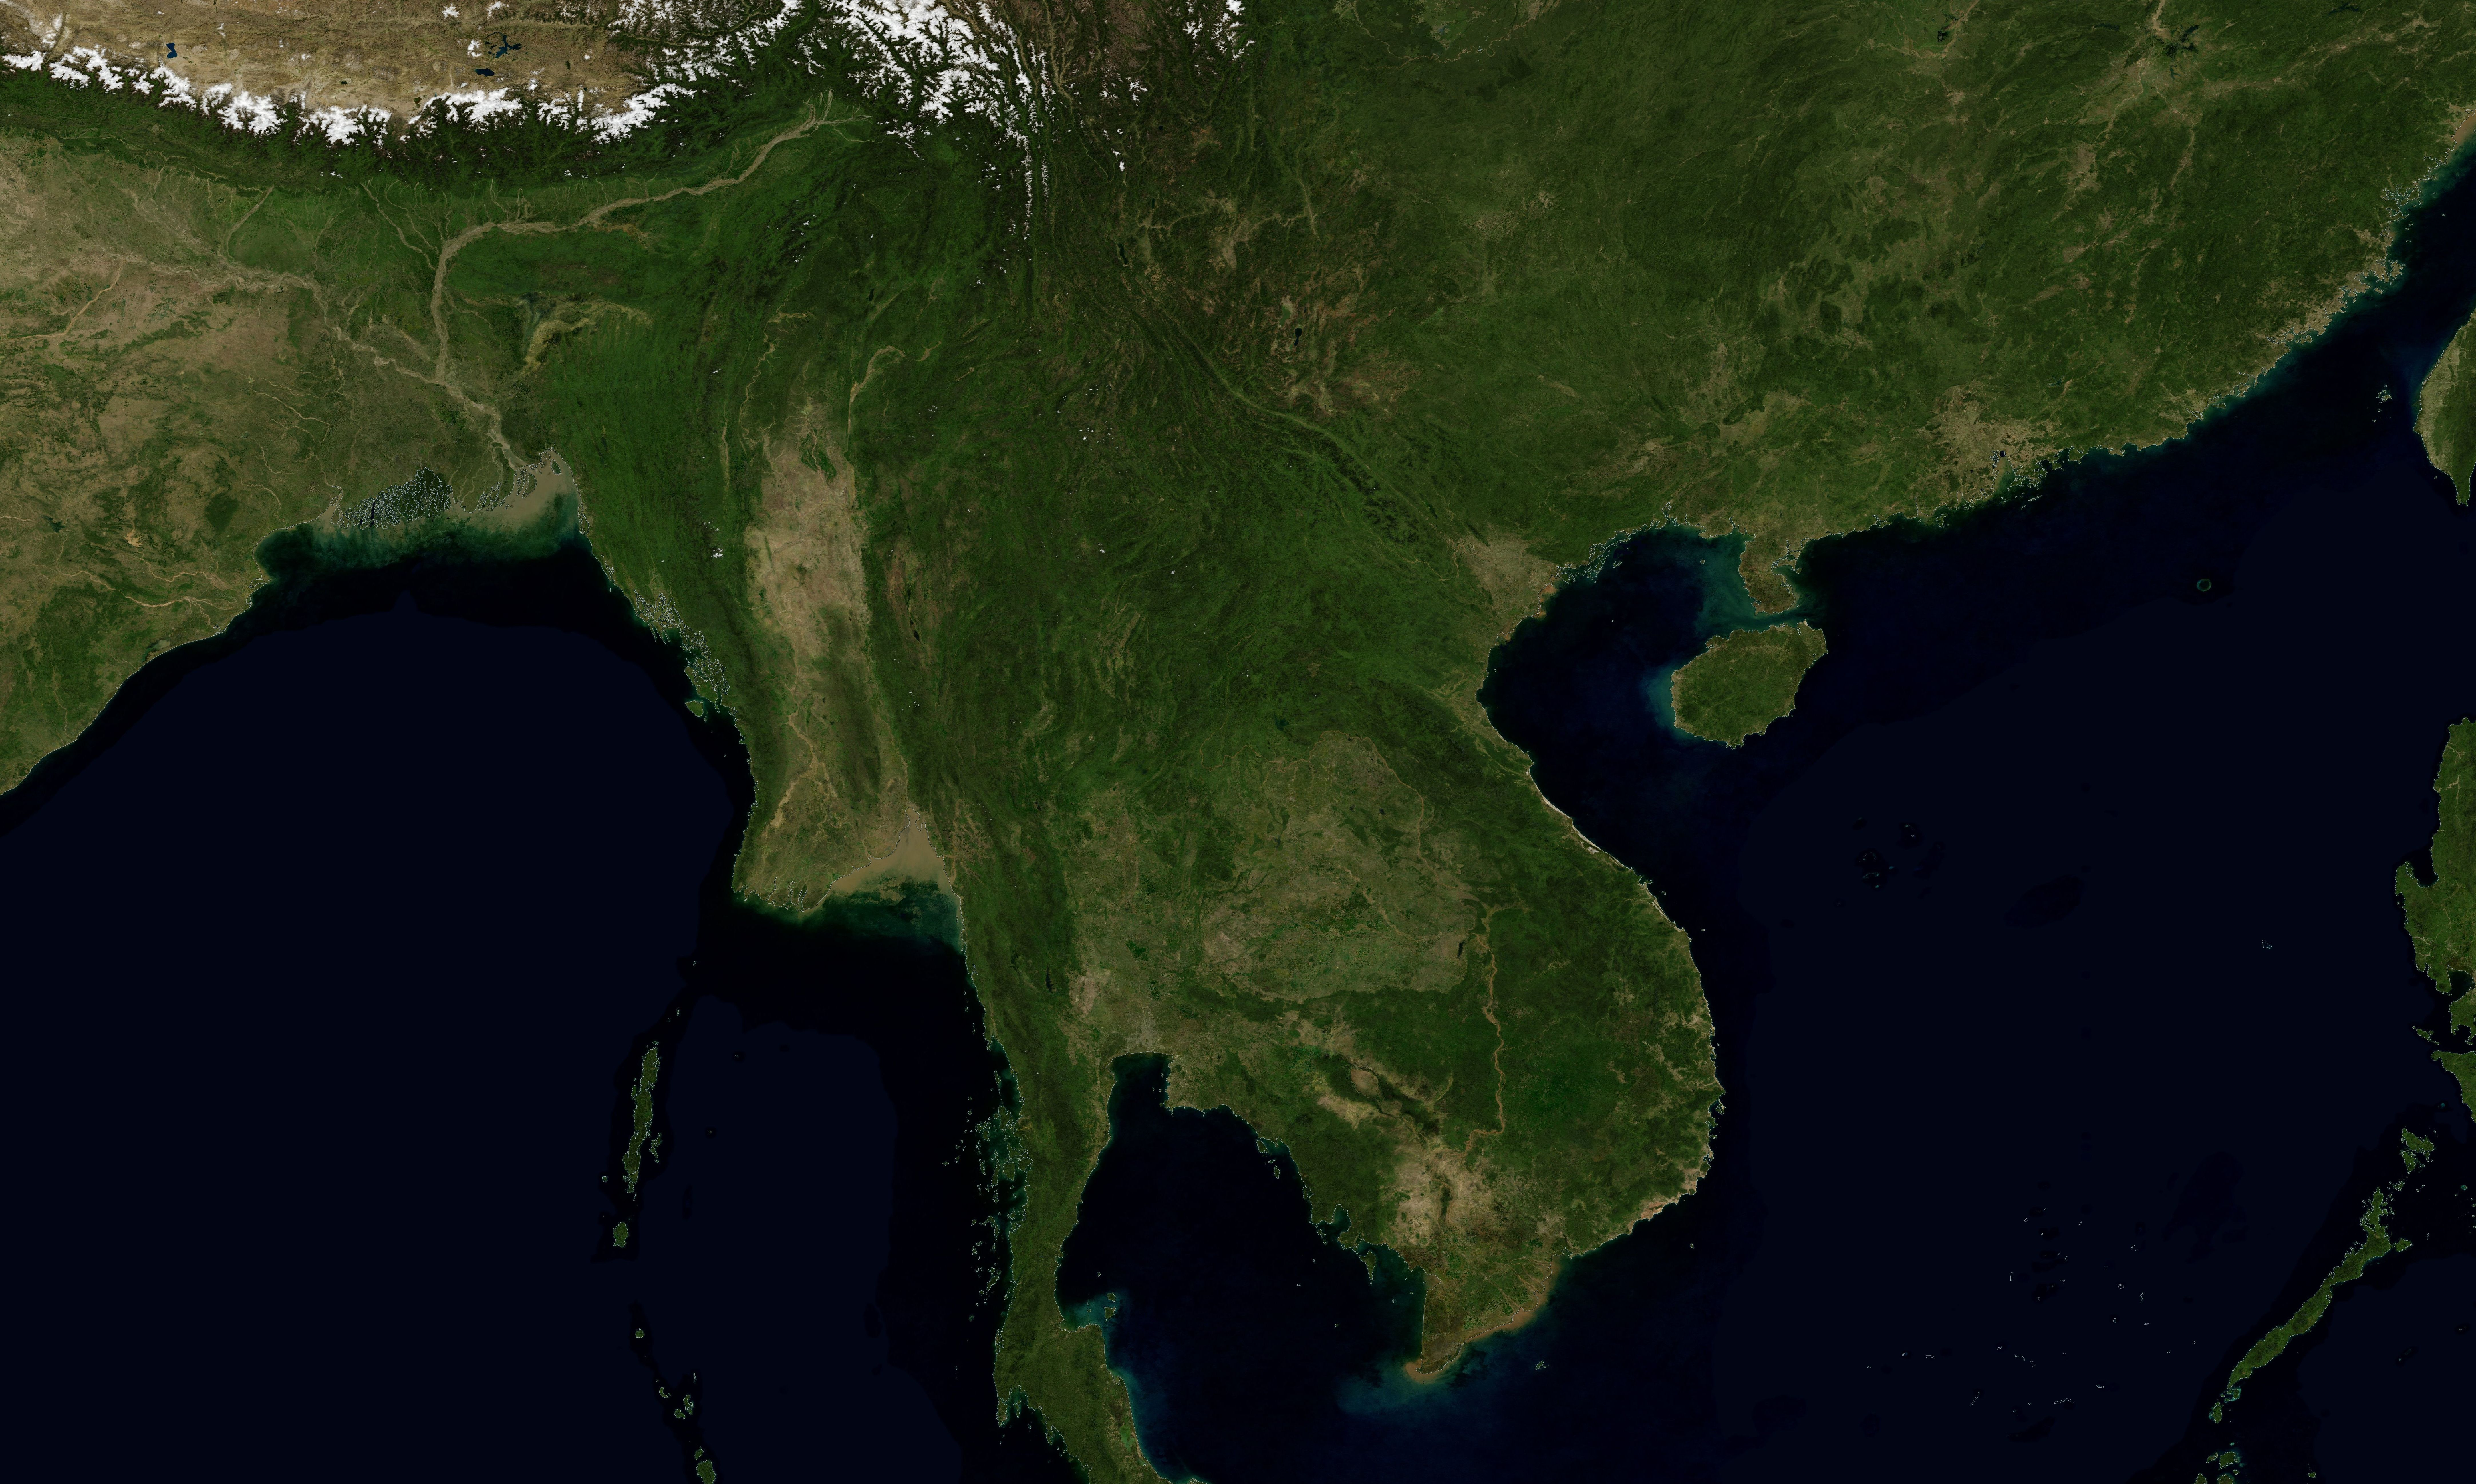 A satellite-based rendering of the Mekong River in Southeast Asia.